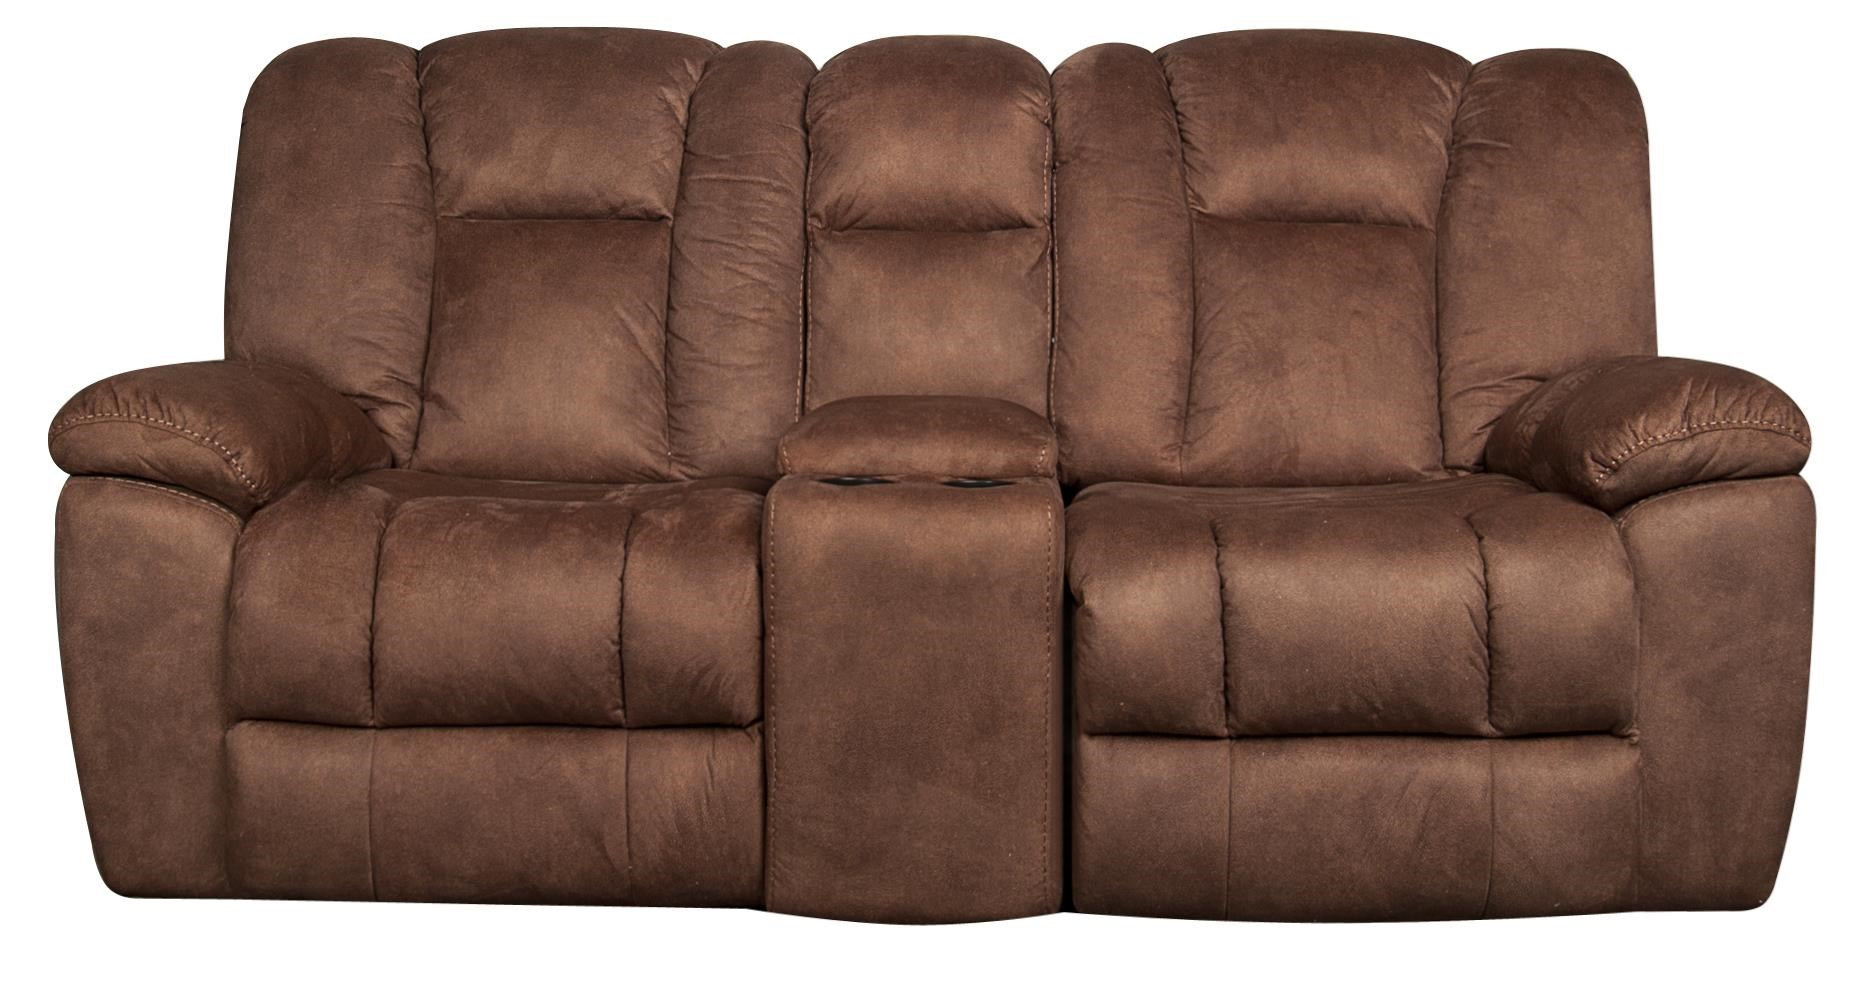 Morris Home Furnishings Caleb - Caleb Gliding Reclining Loveseat - Item Number: 105814292